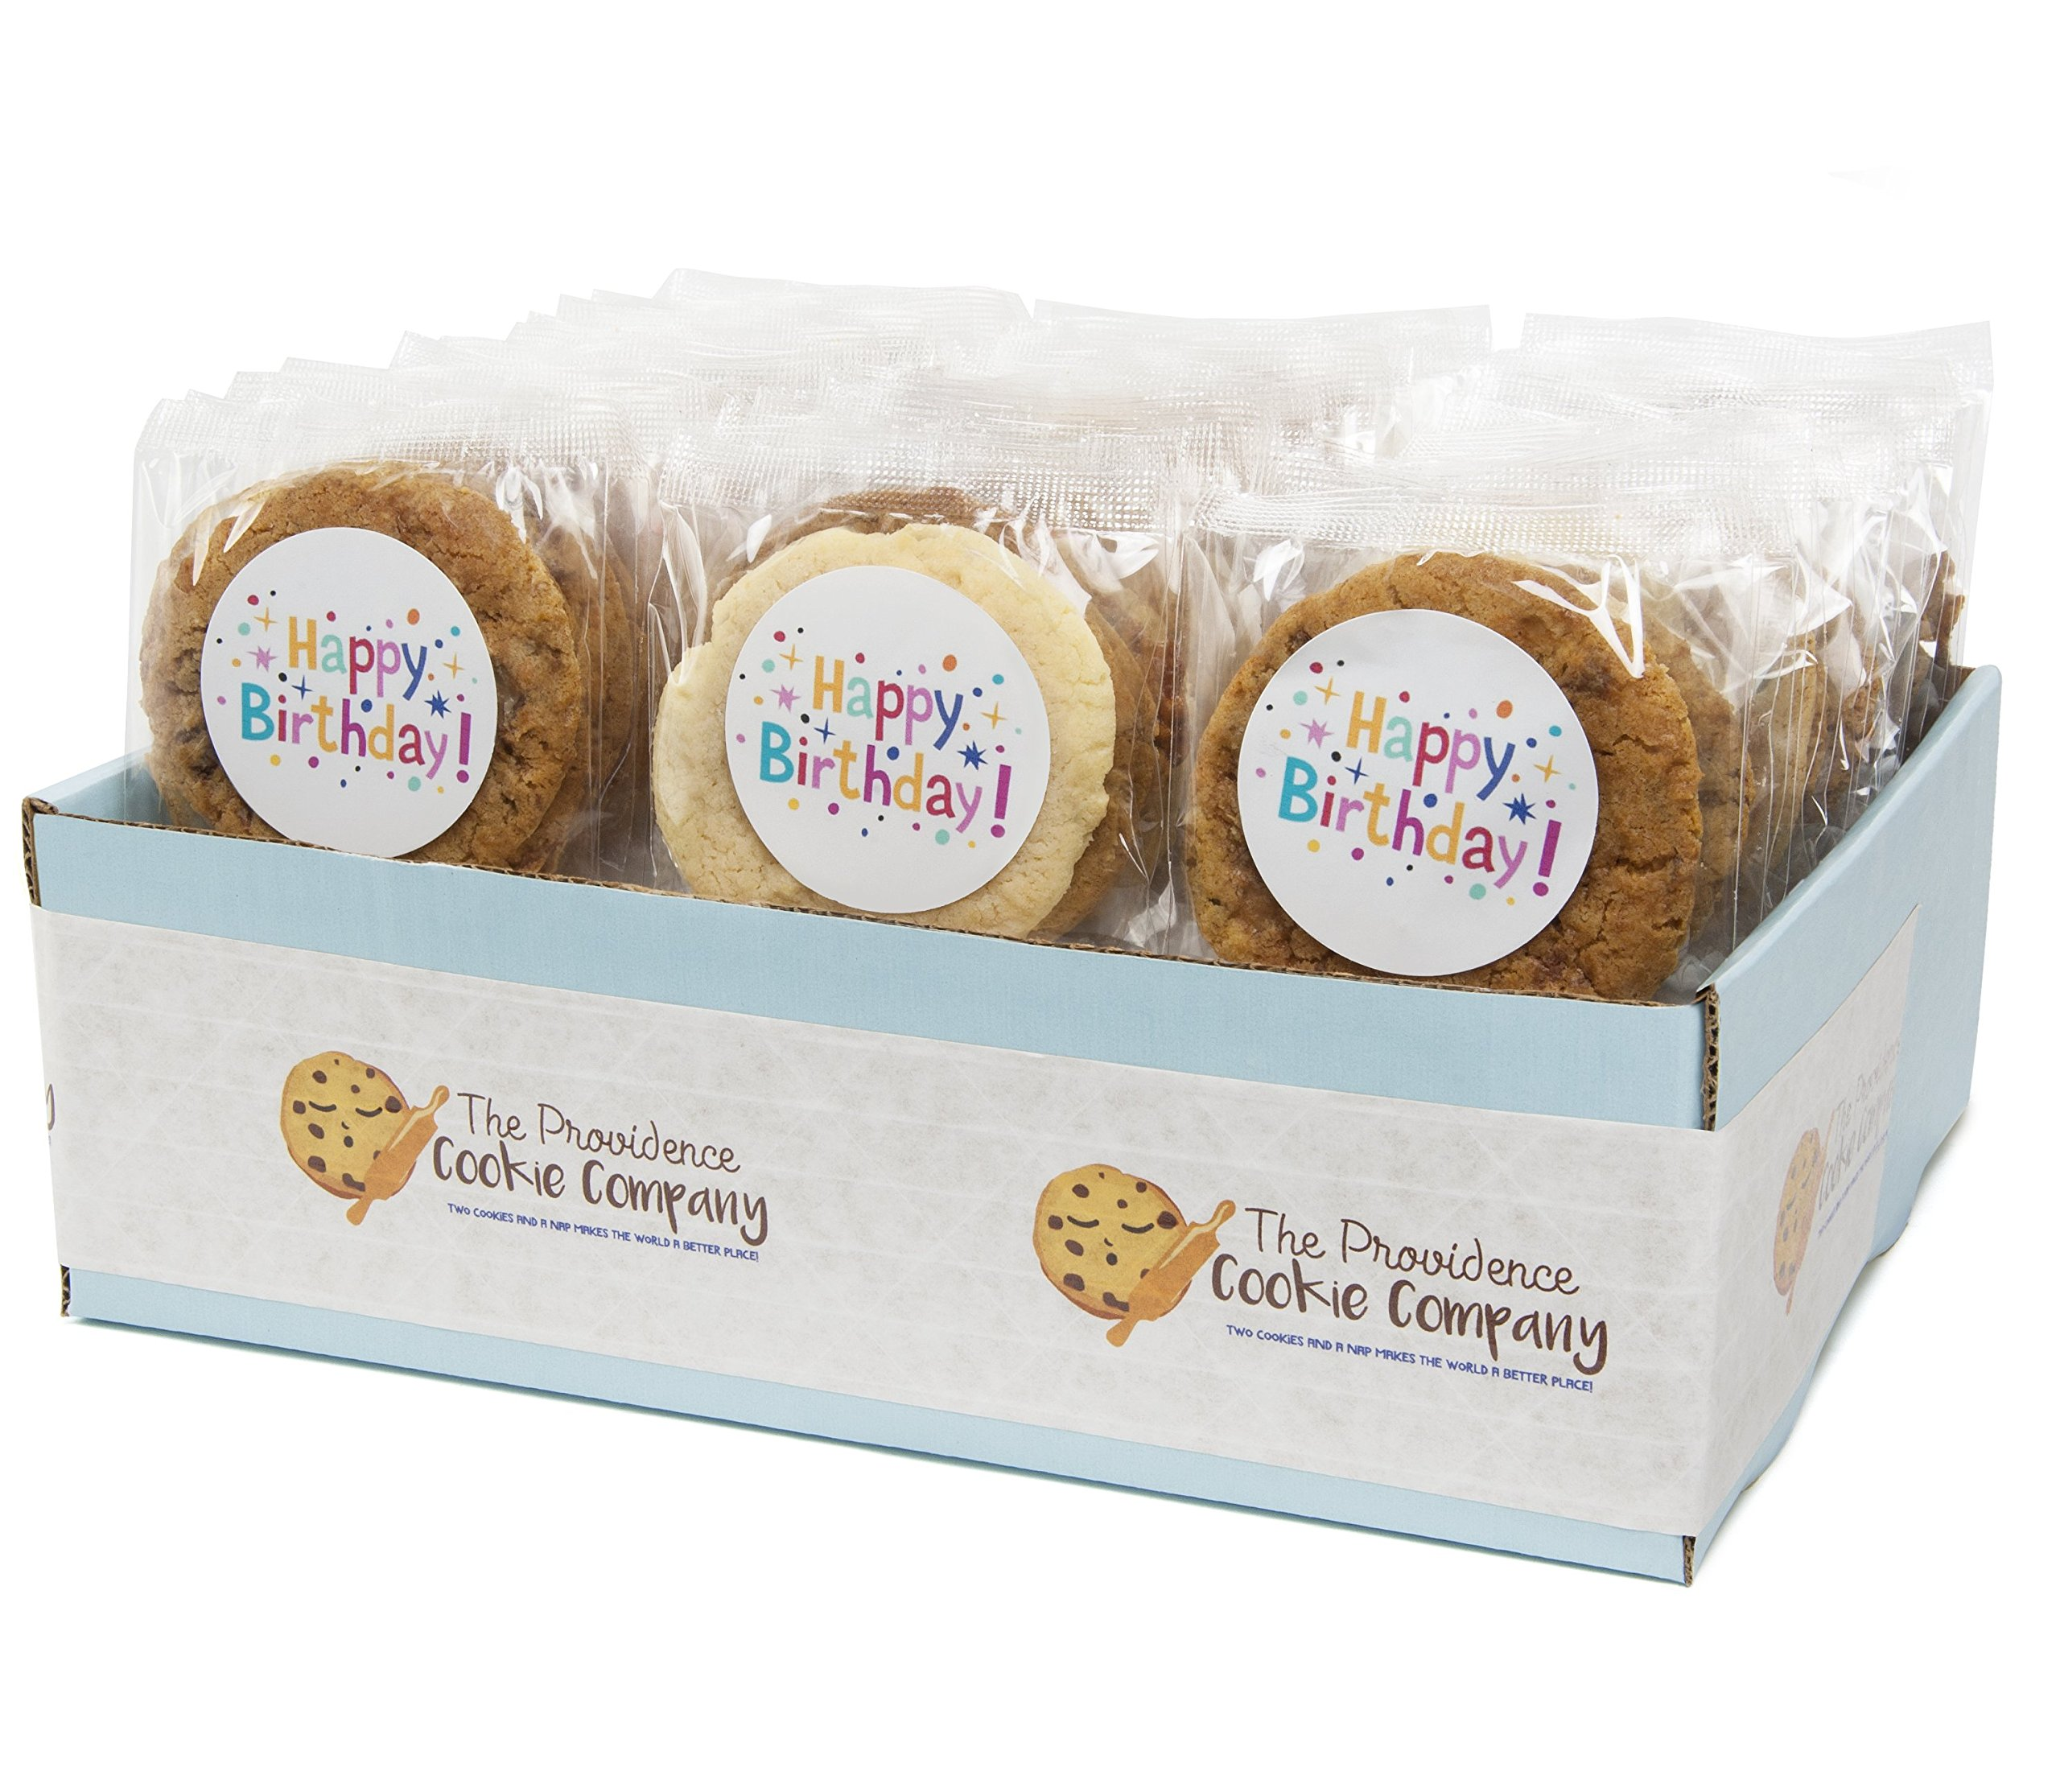 The Providence Cookie Company HAPPY BIRTHDAY GOURMET COOKIE GIFT choose 1, 2, 3 or 4 Dozen (1 Dozen) by The Providence Cookie Company llc (Image #1)